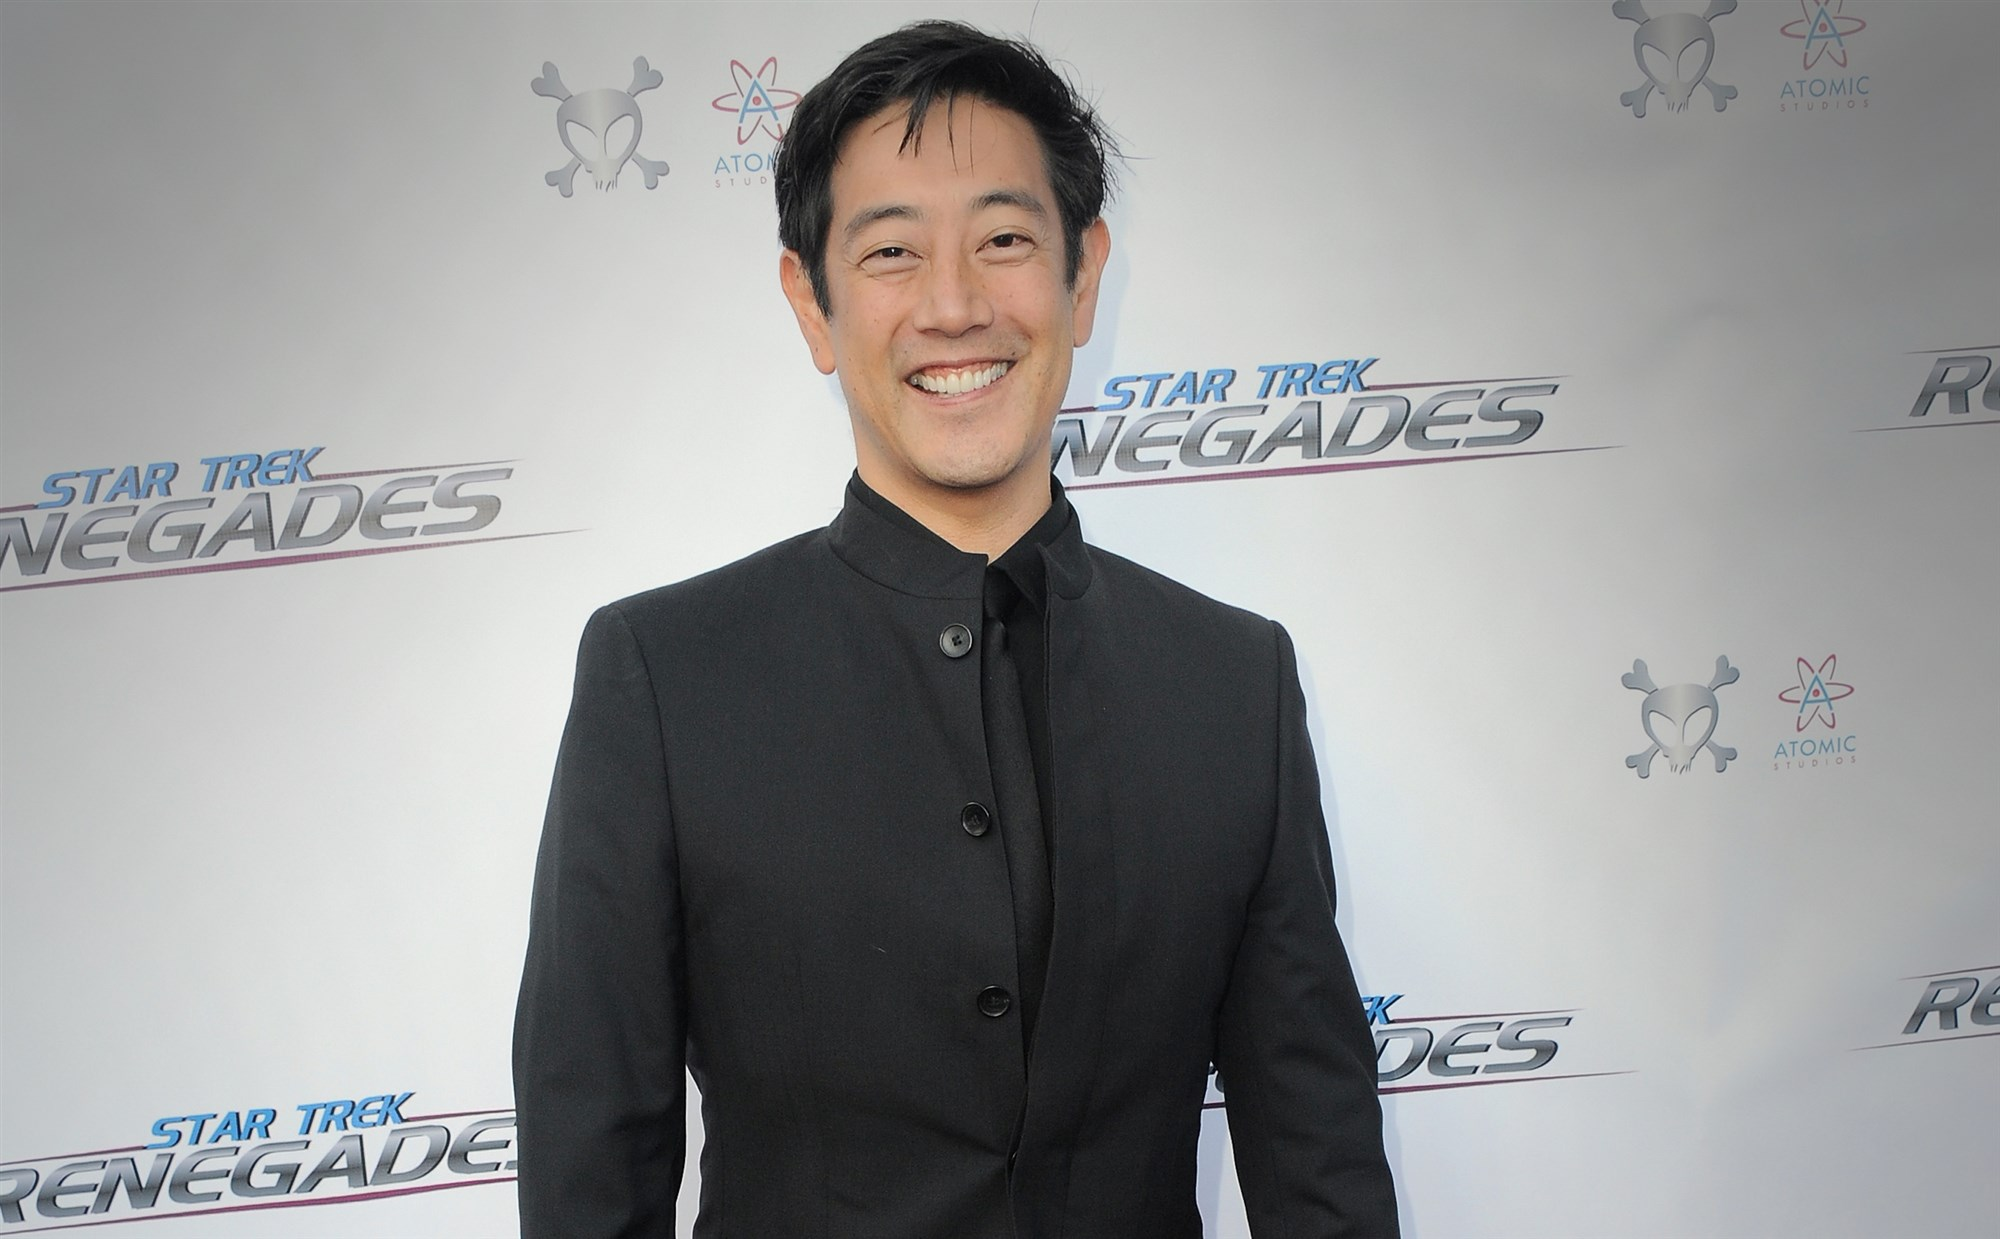 Grant Imahara Mythbusters host  dies at 49